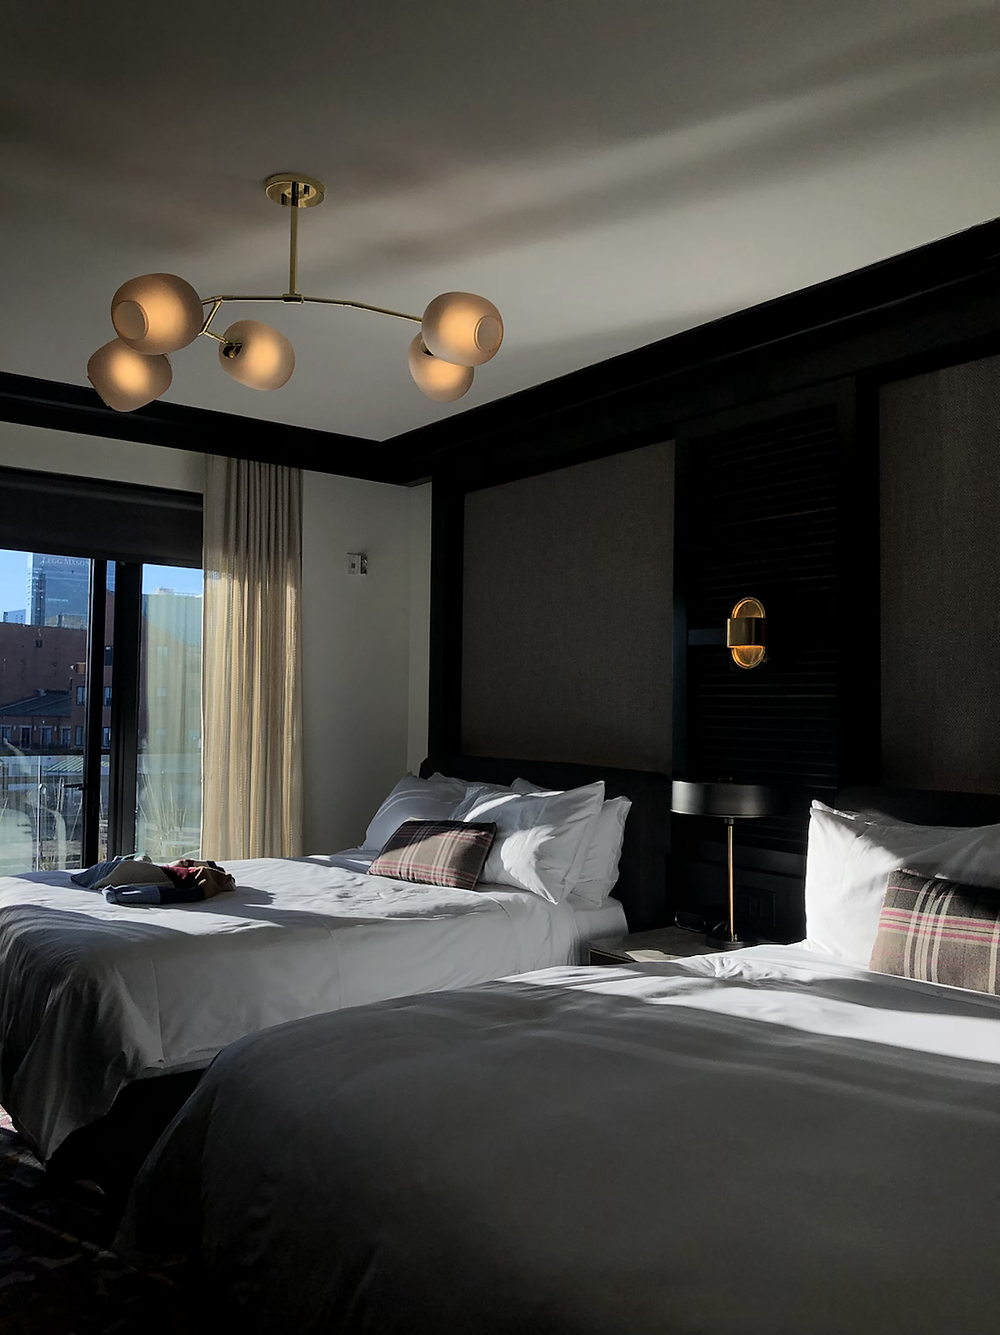 Natural light pours into hotel room and hits the two queen beds.